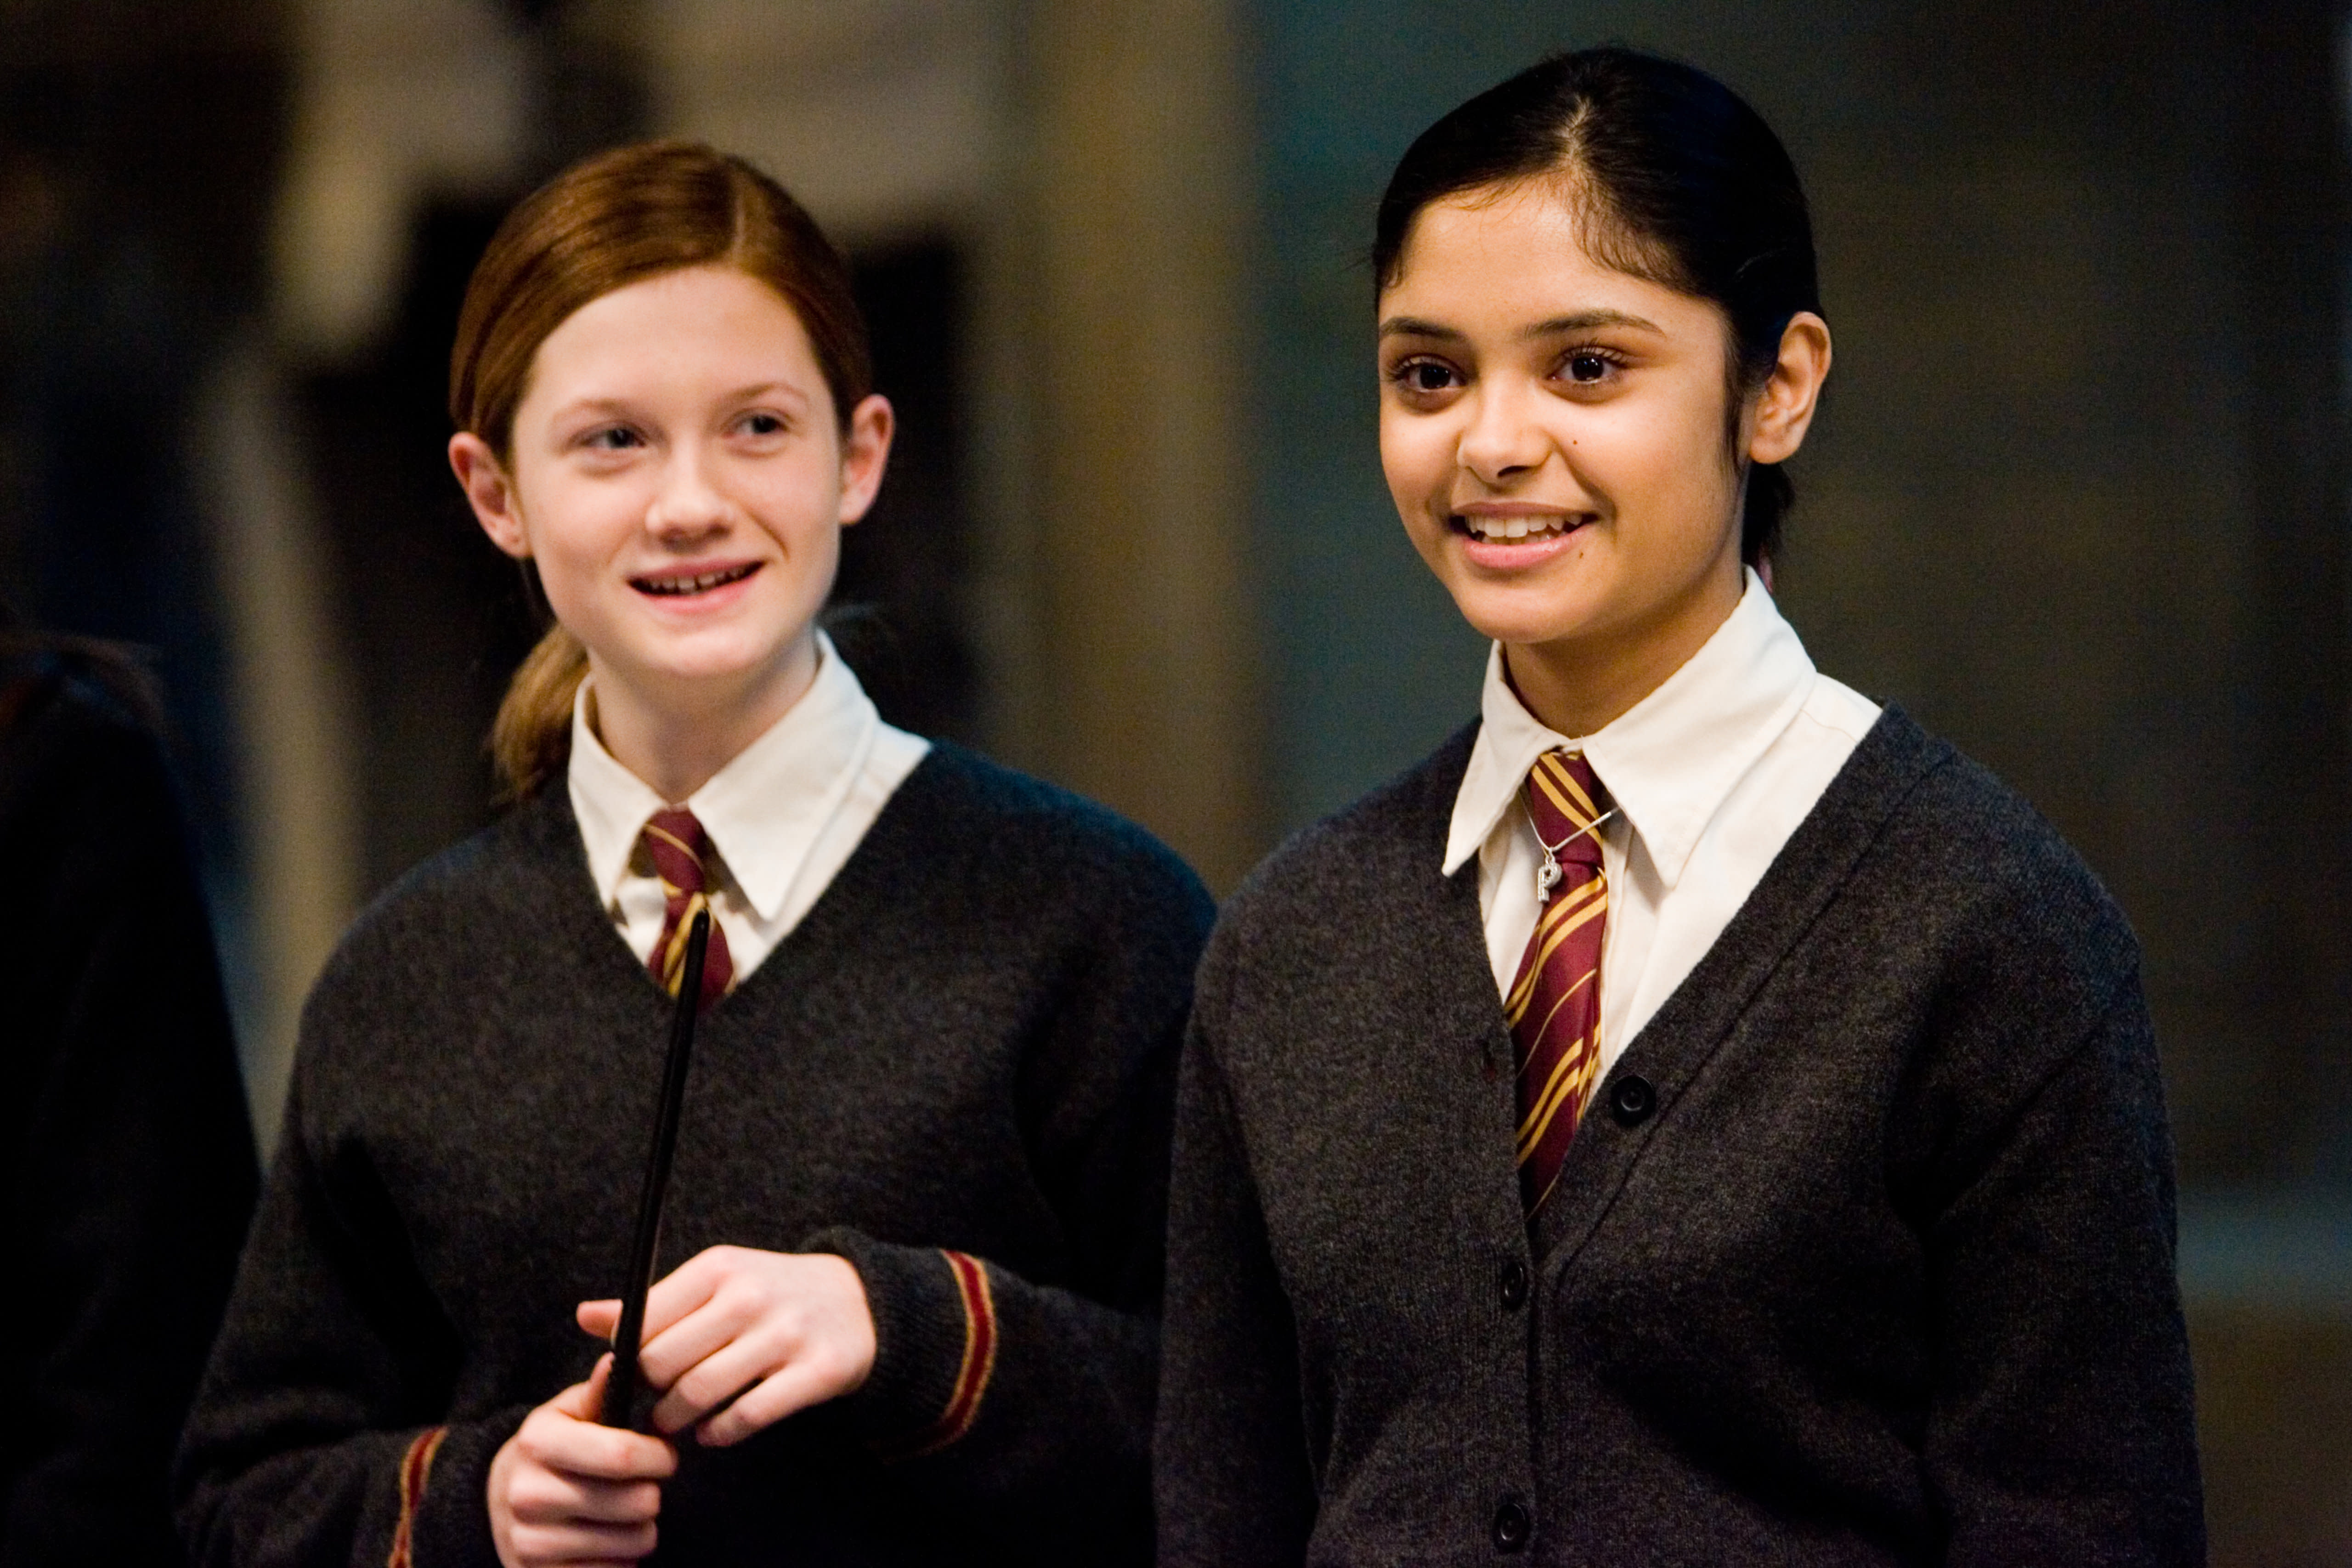 WB F5 Ginny Weasley Padma Patil in Dumbledores Army HP5D-3254